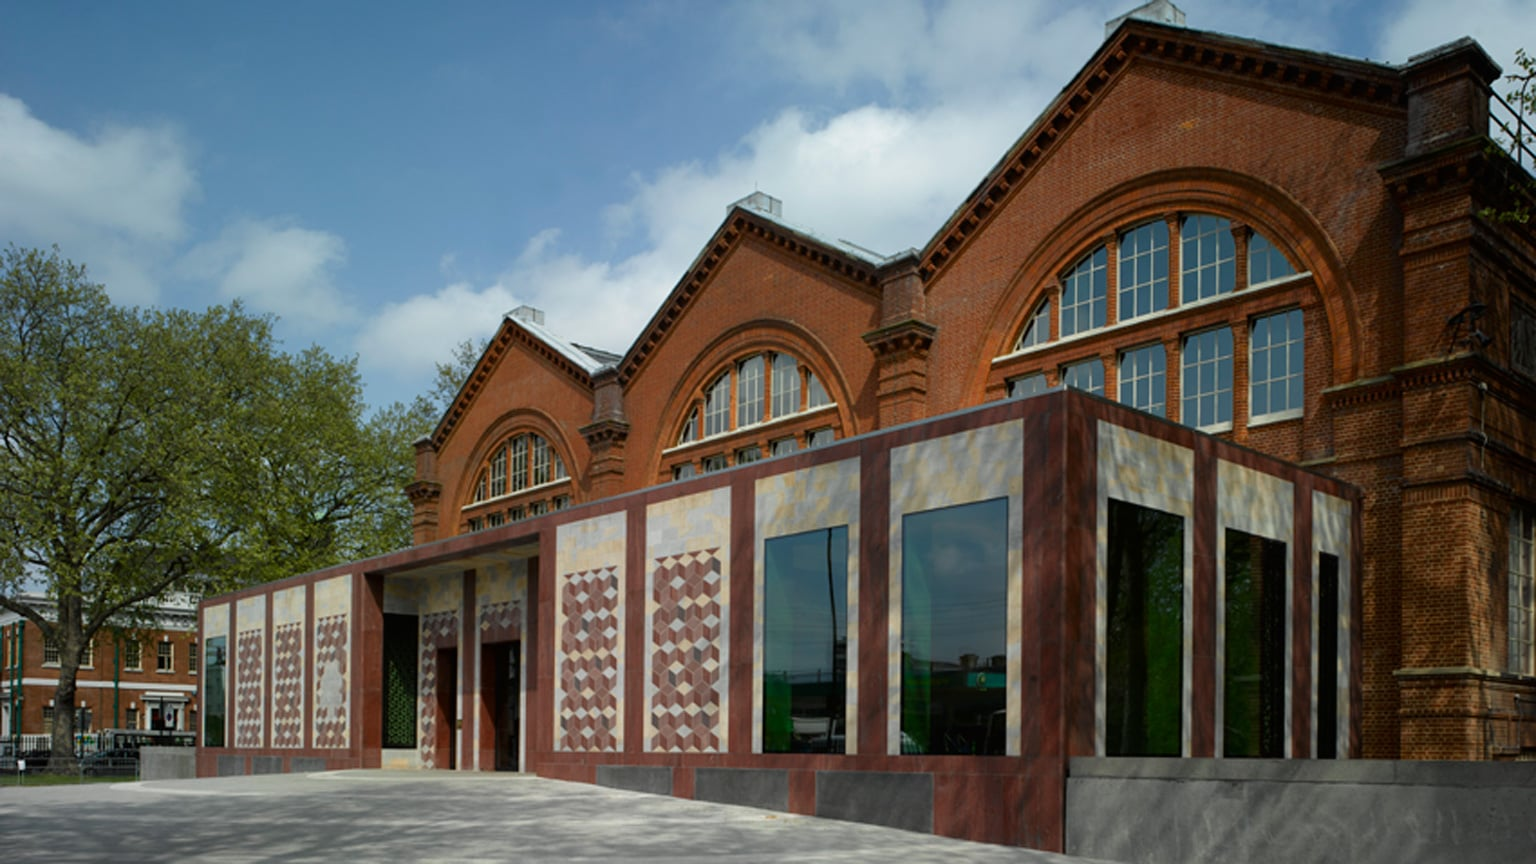 Front Entrance of the Museum of Childhood, by Architects Caruso St John